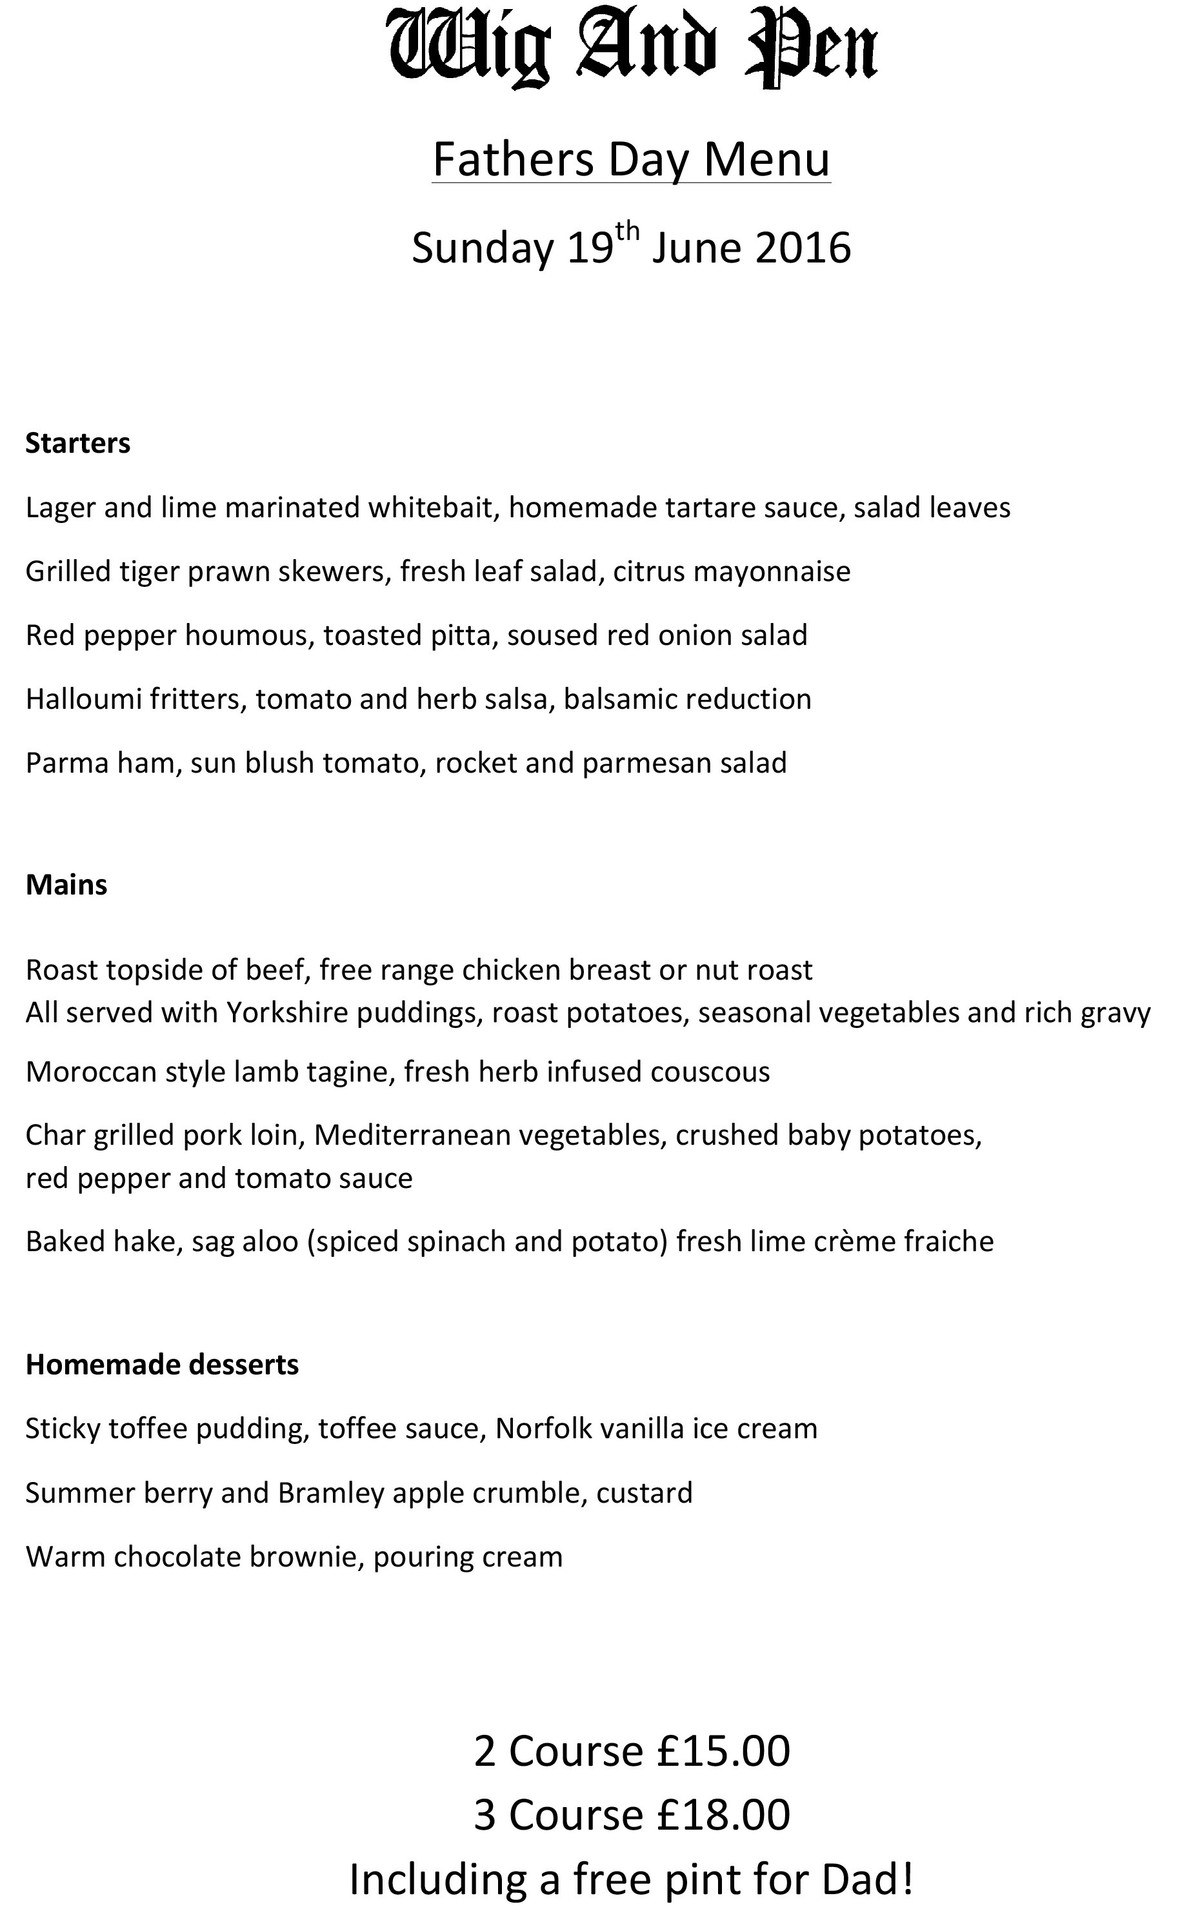 Father's Day Menu 2016